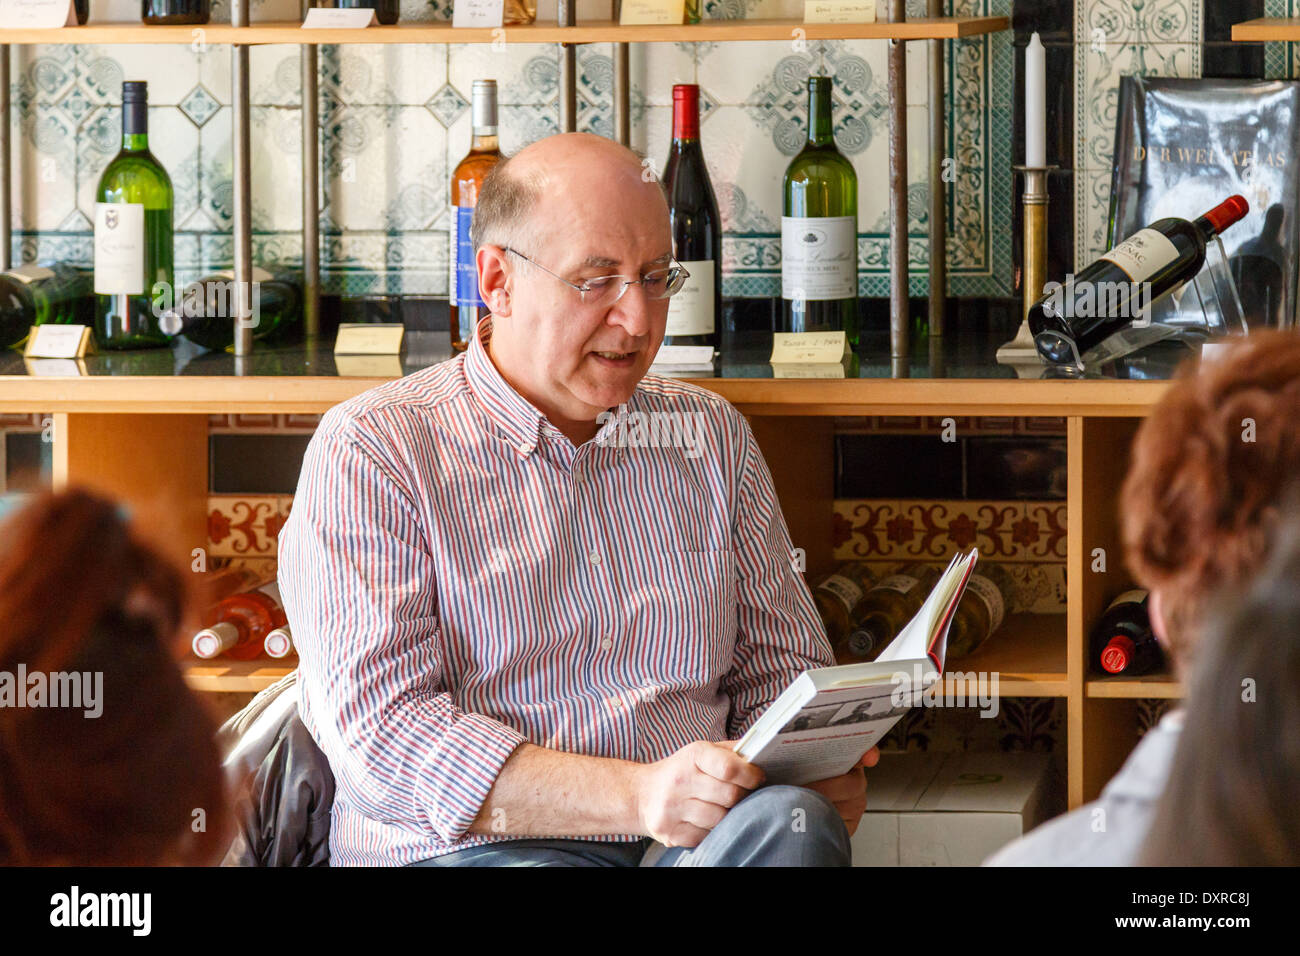 German journalist and author Peter Wensierski reads from his book 'Die verbotene Reise' in Berlin, Germany on March 29, 2014. - Stock Image